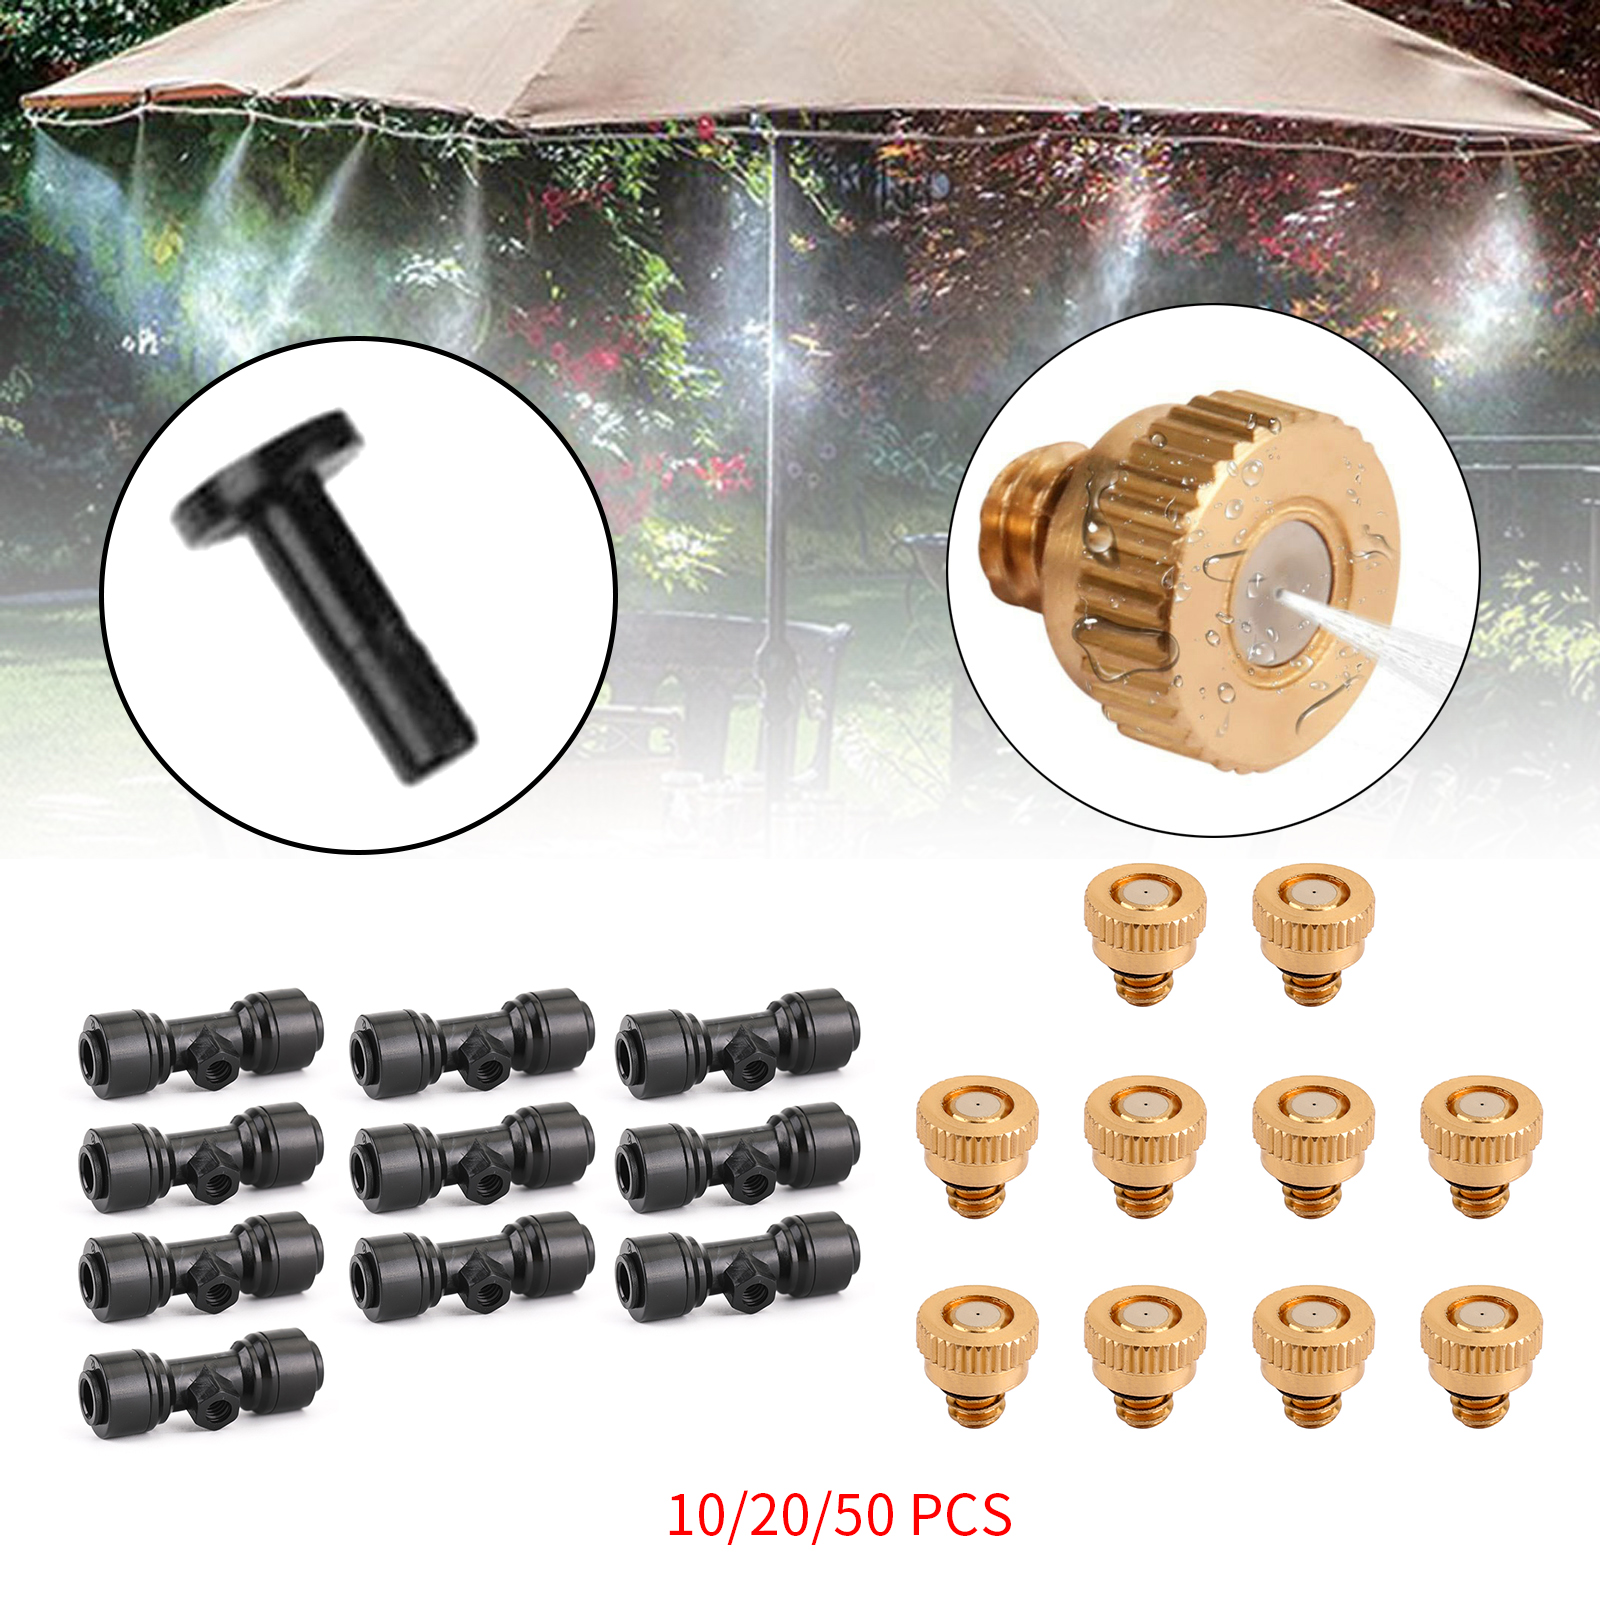 5-50Pcs//set Brass Misting Nozzles Water Mister Sprinkle Tool For Cooling System